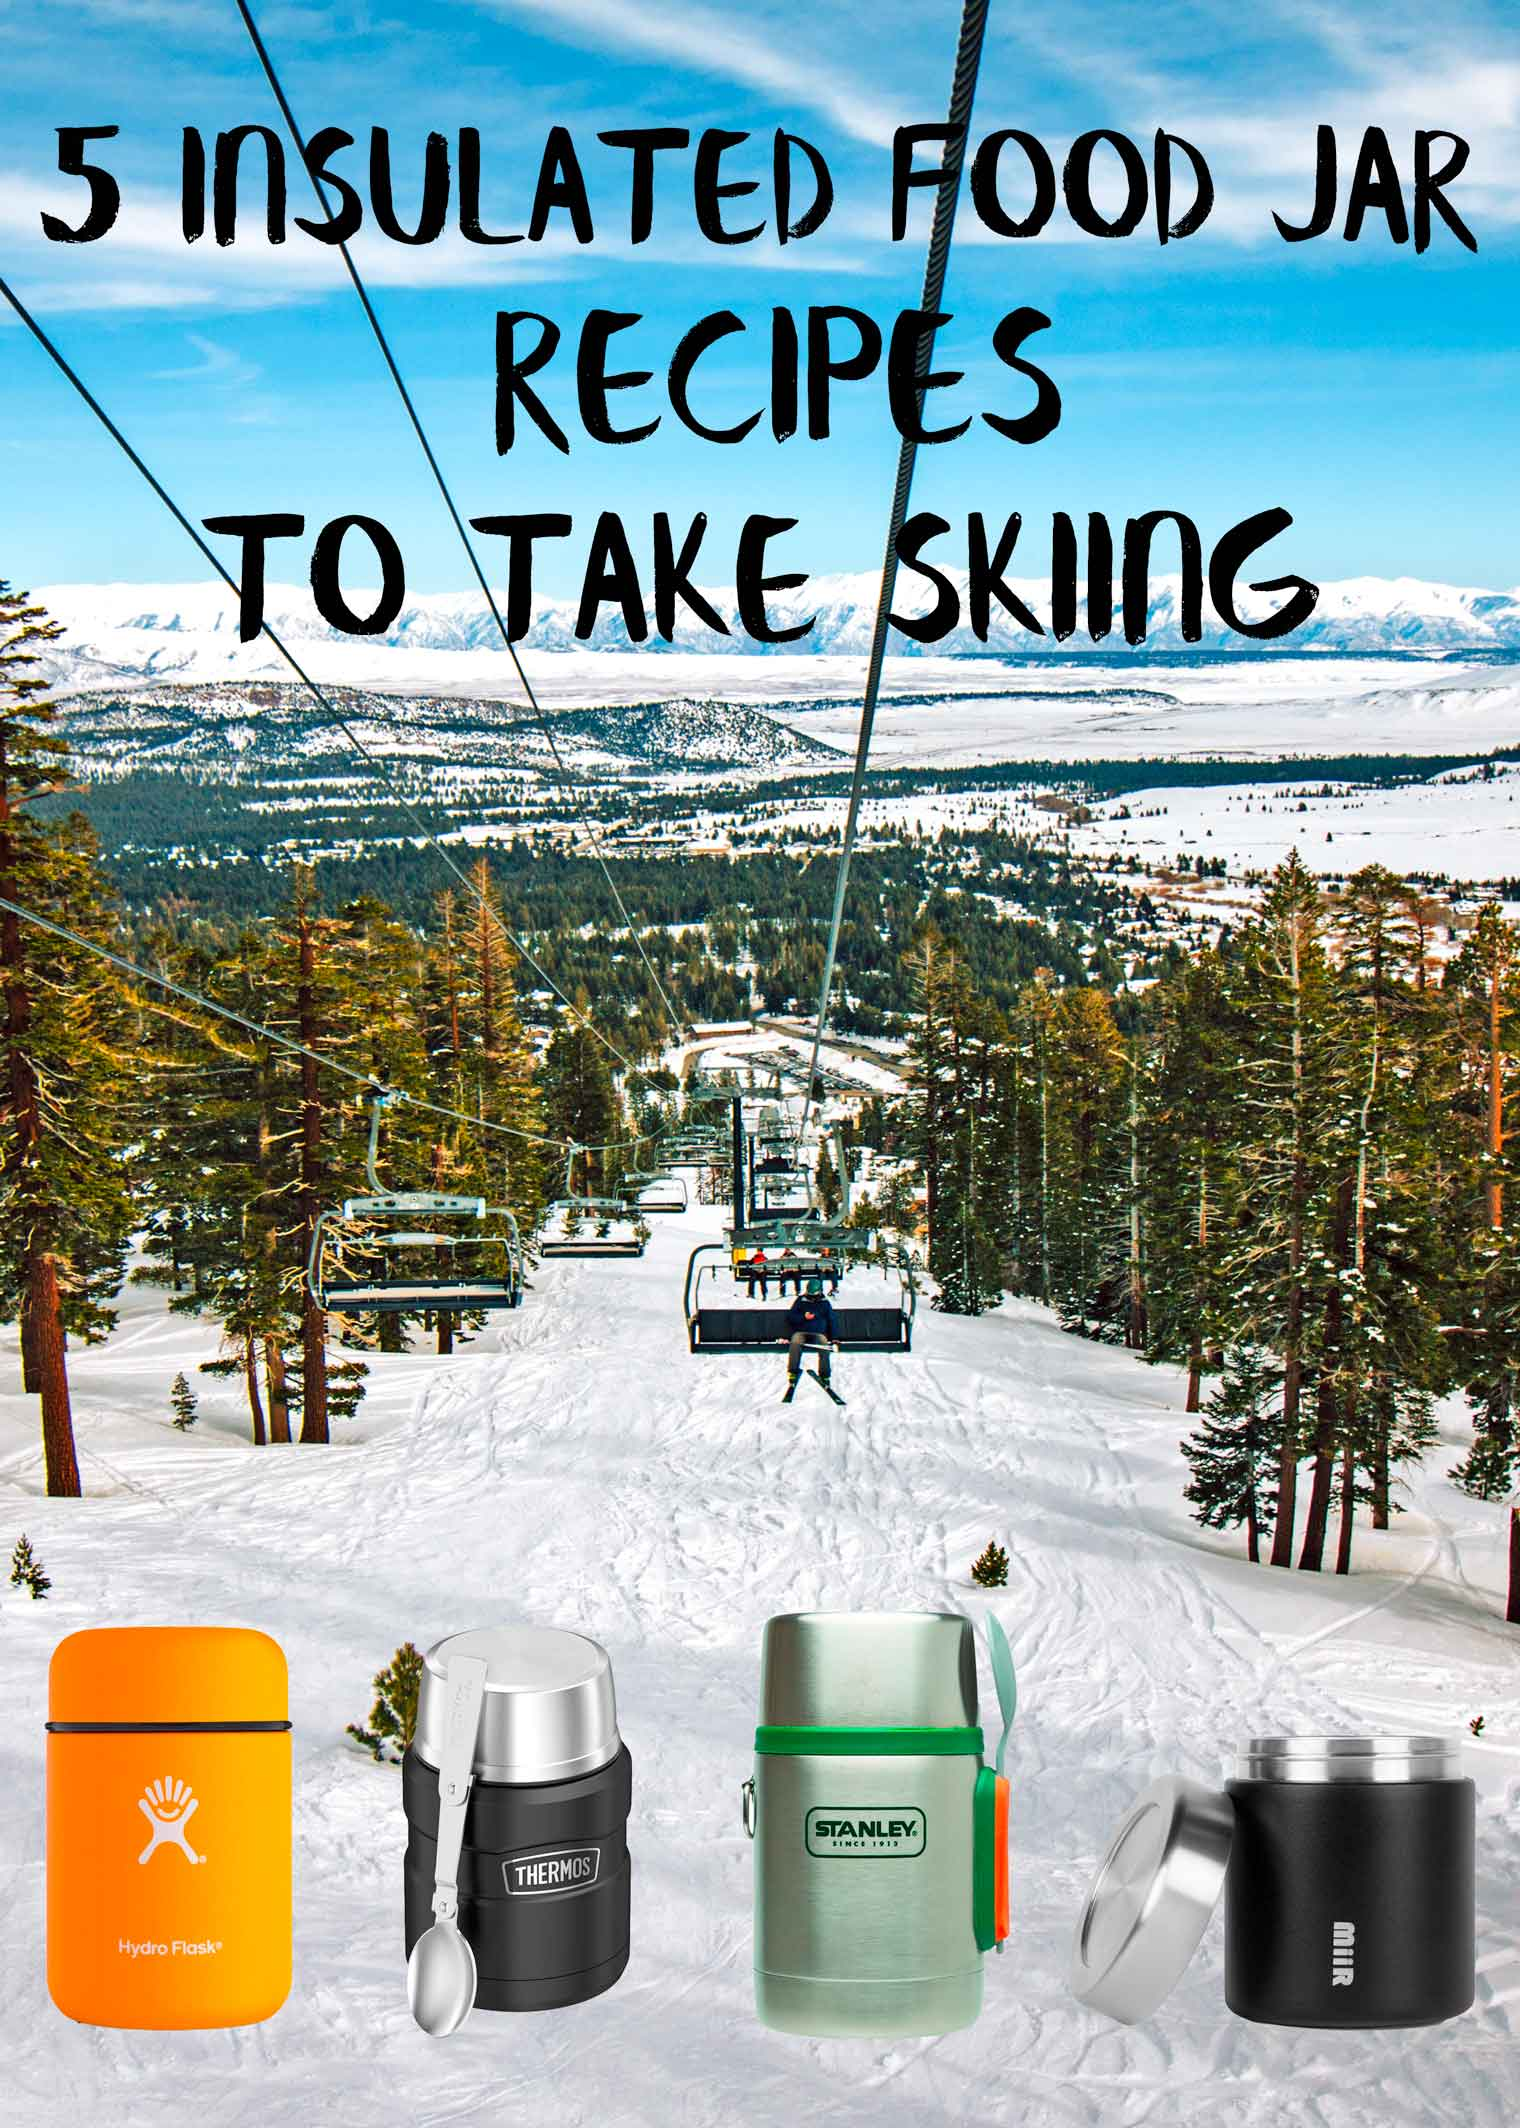 5 Insulated Food Jar Ideas For The Ski Season Fresh Off The Grid